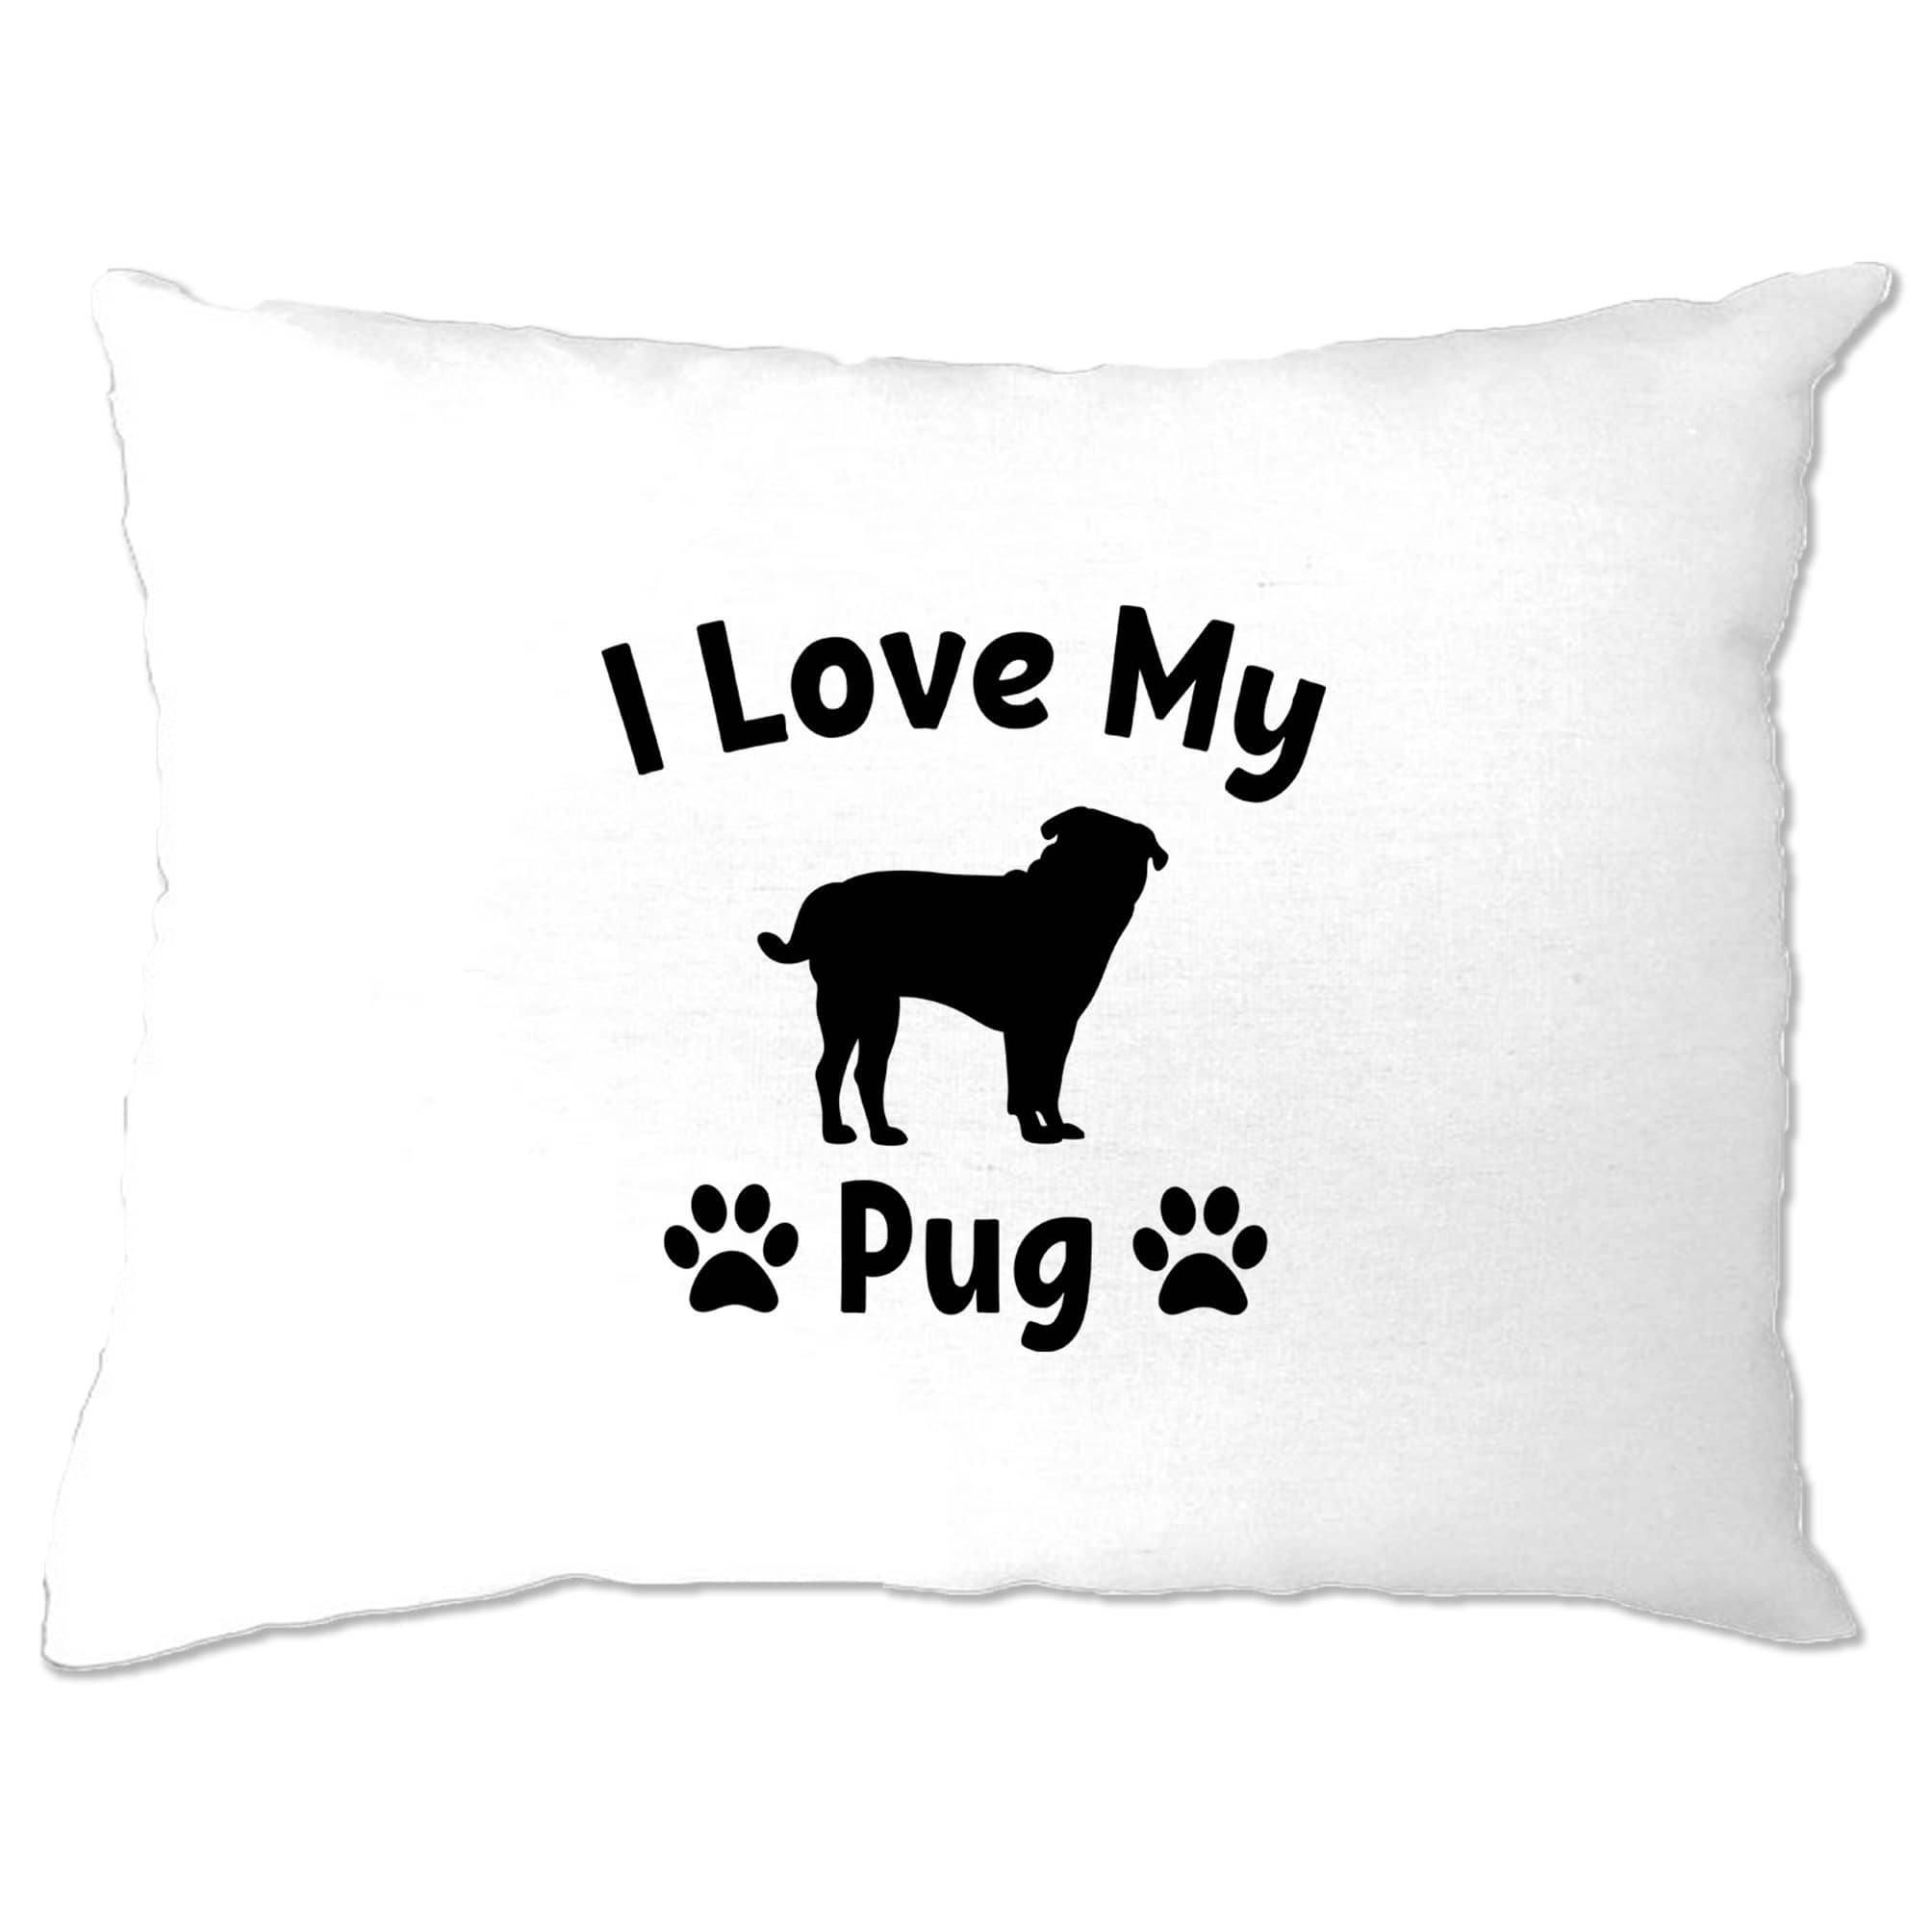 Dog Owner Pillow Case I Love My Pug Slogan